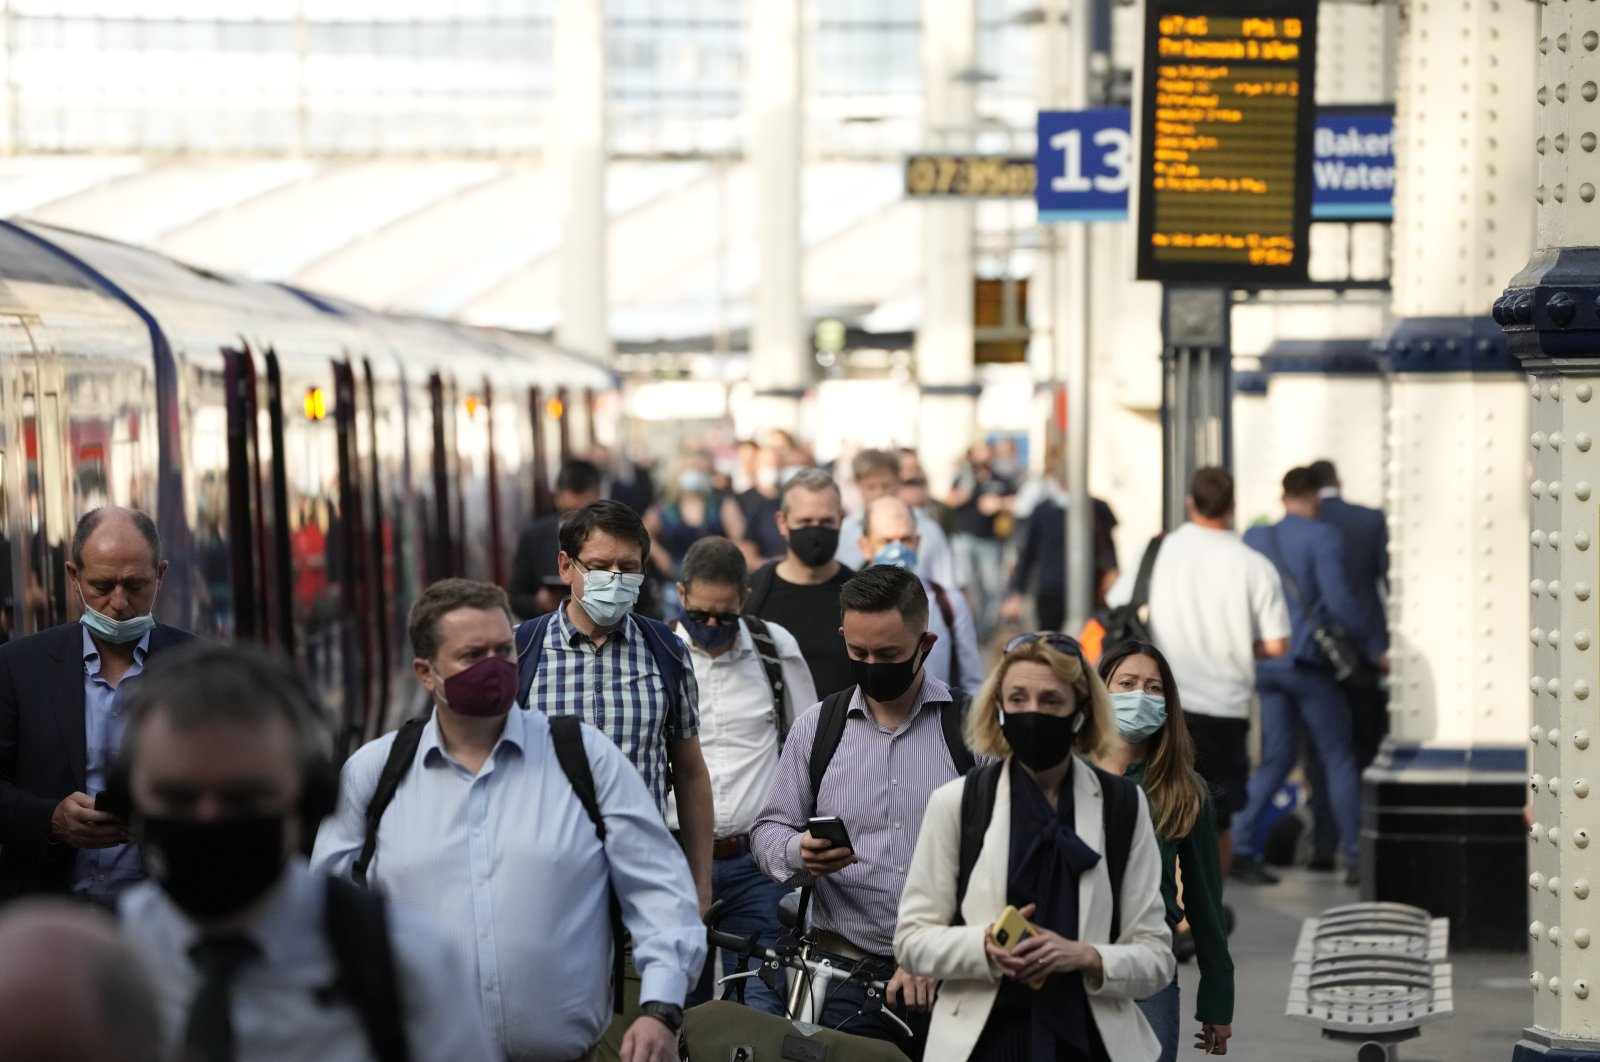 People wear face masks to curb the spread of the coronavirus as they disembark from a train during the morning rush hour at Waterloo train station in London, UK, July 14, 2021. (AP Photo)